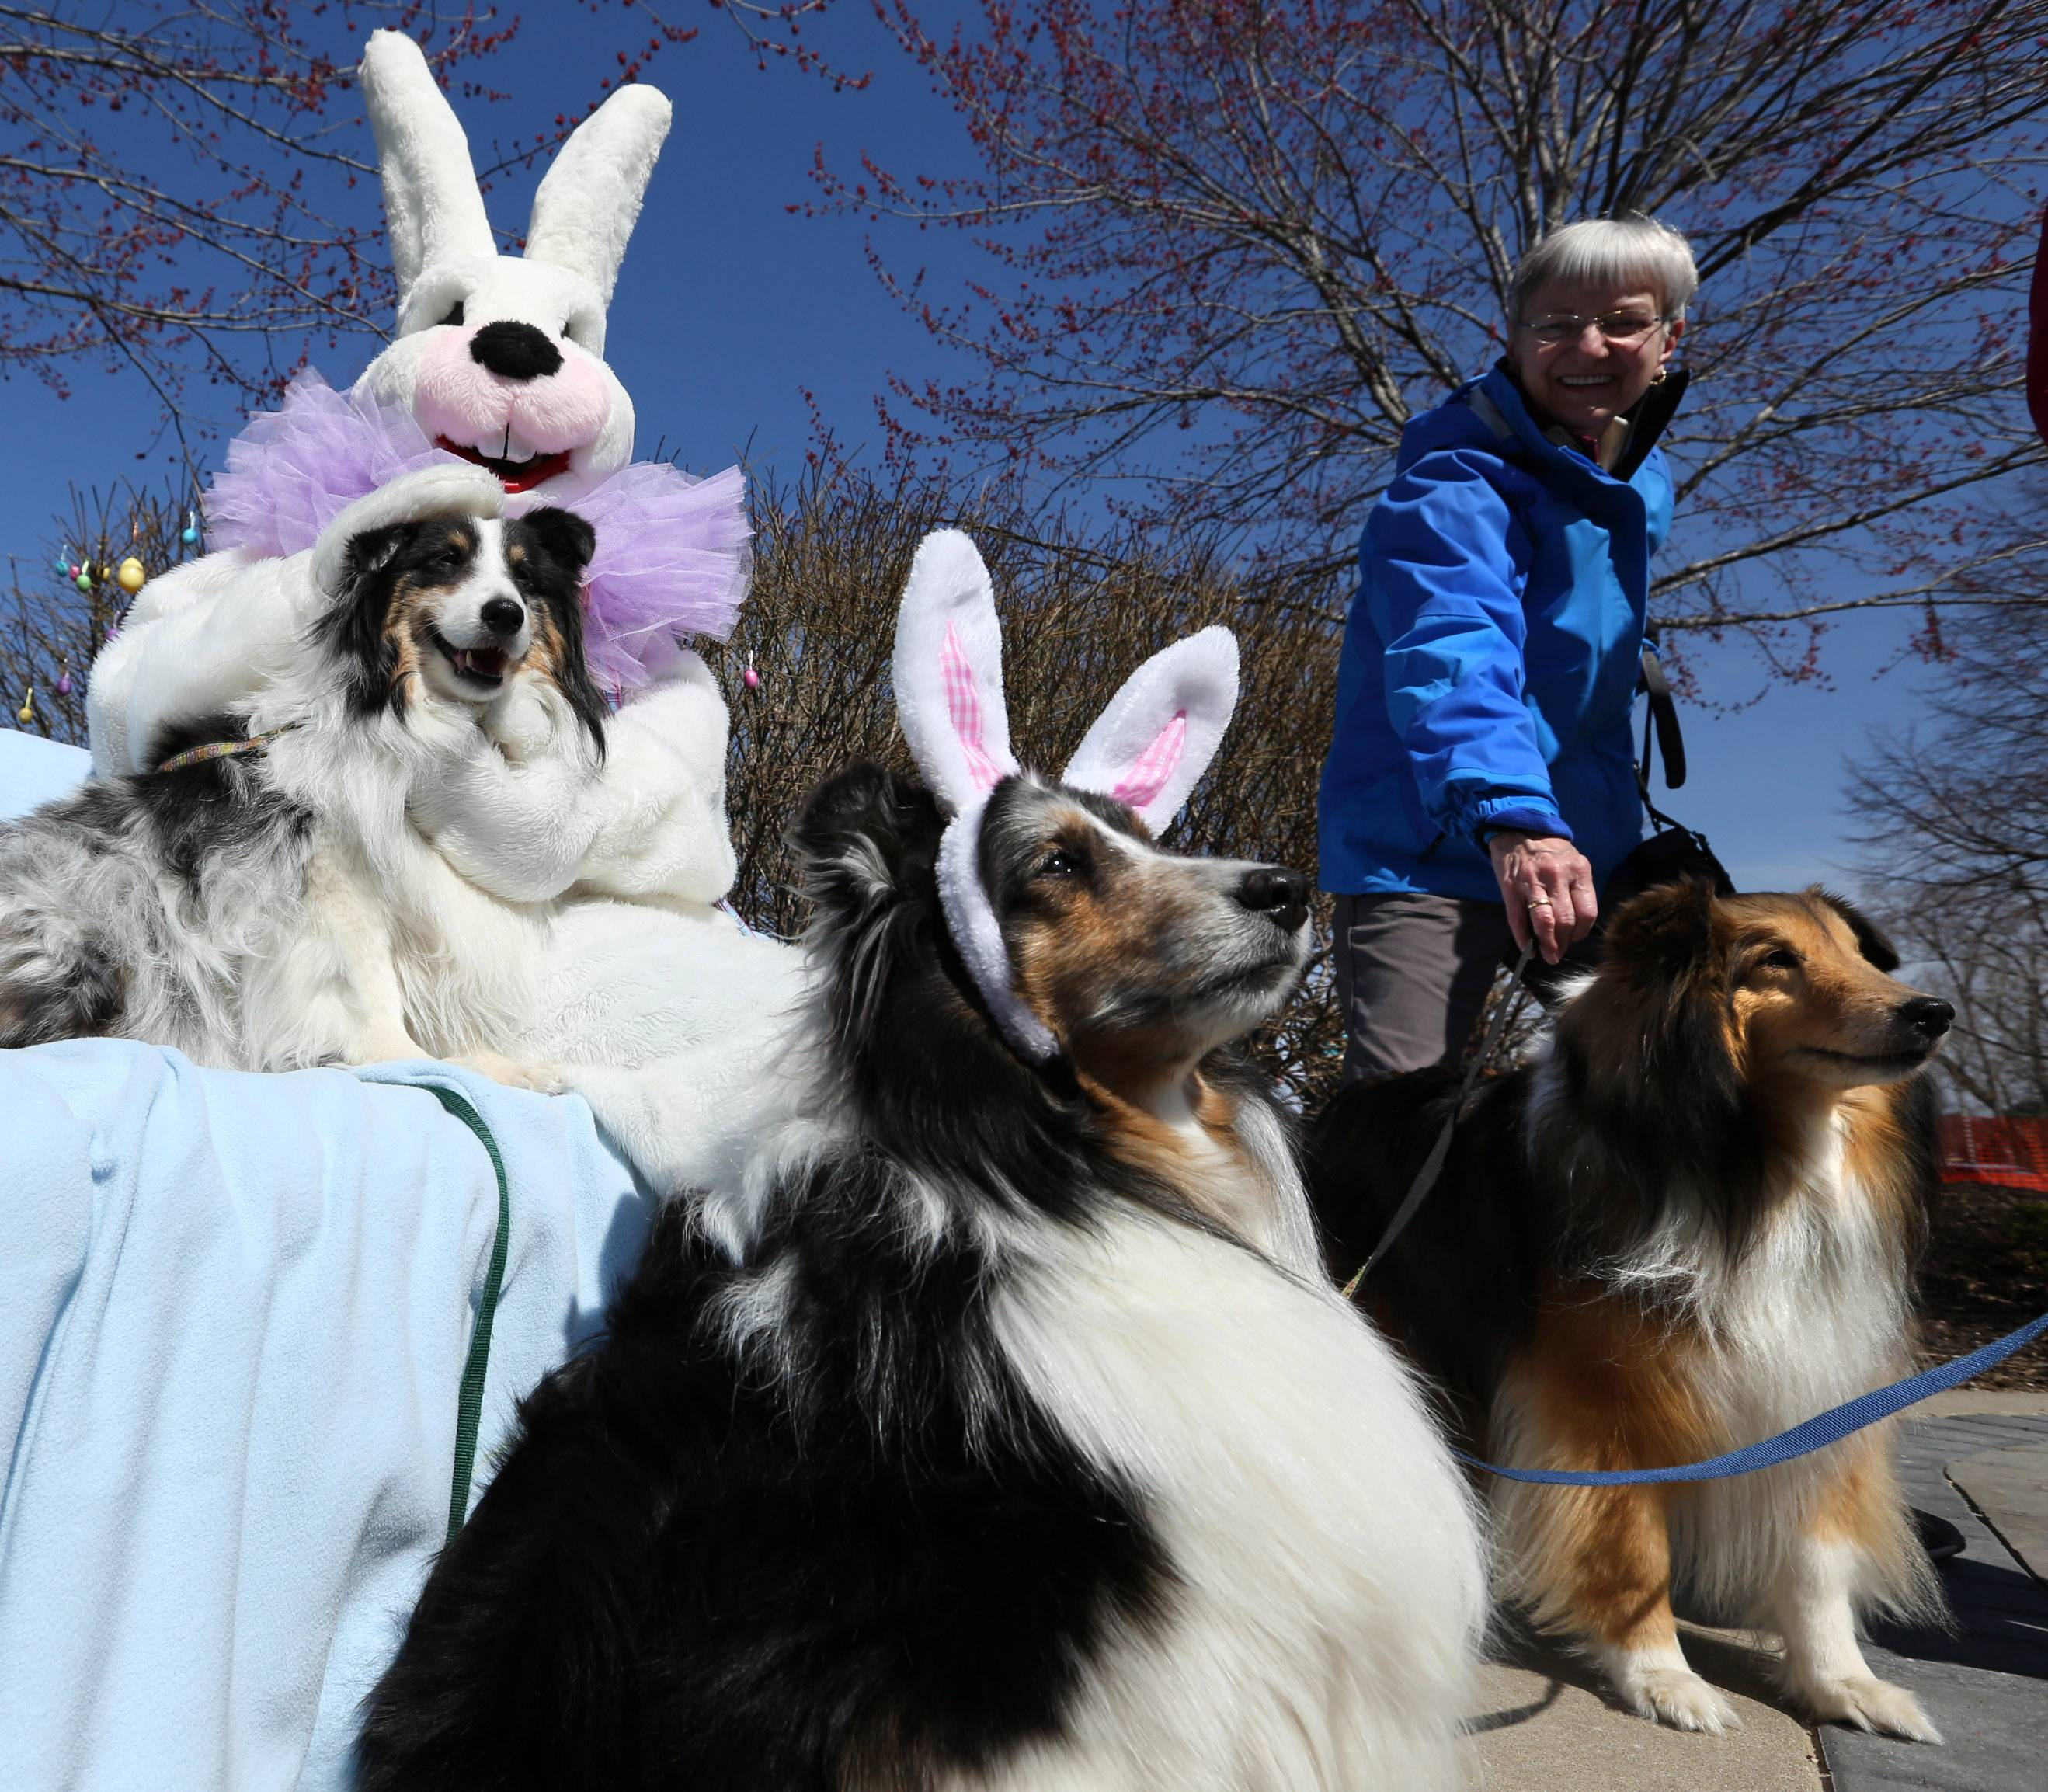 Roberta Russ of Palatine and Rex, 9, on right, pose for photos as Prince, 9, wears rabbit ears and Avery, 6, owned by Terry Meinke of Palatine, is petted by the Easter Bunny at Palatine Park District's annual Hound Egg Hunt at Towne Square on Saturday.